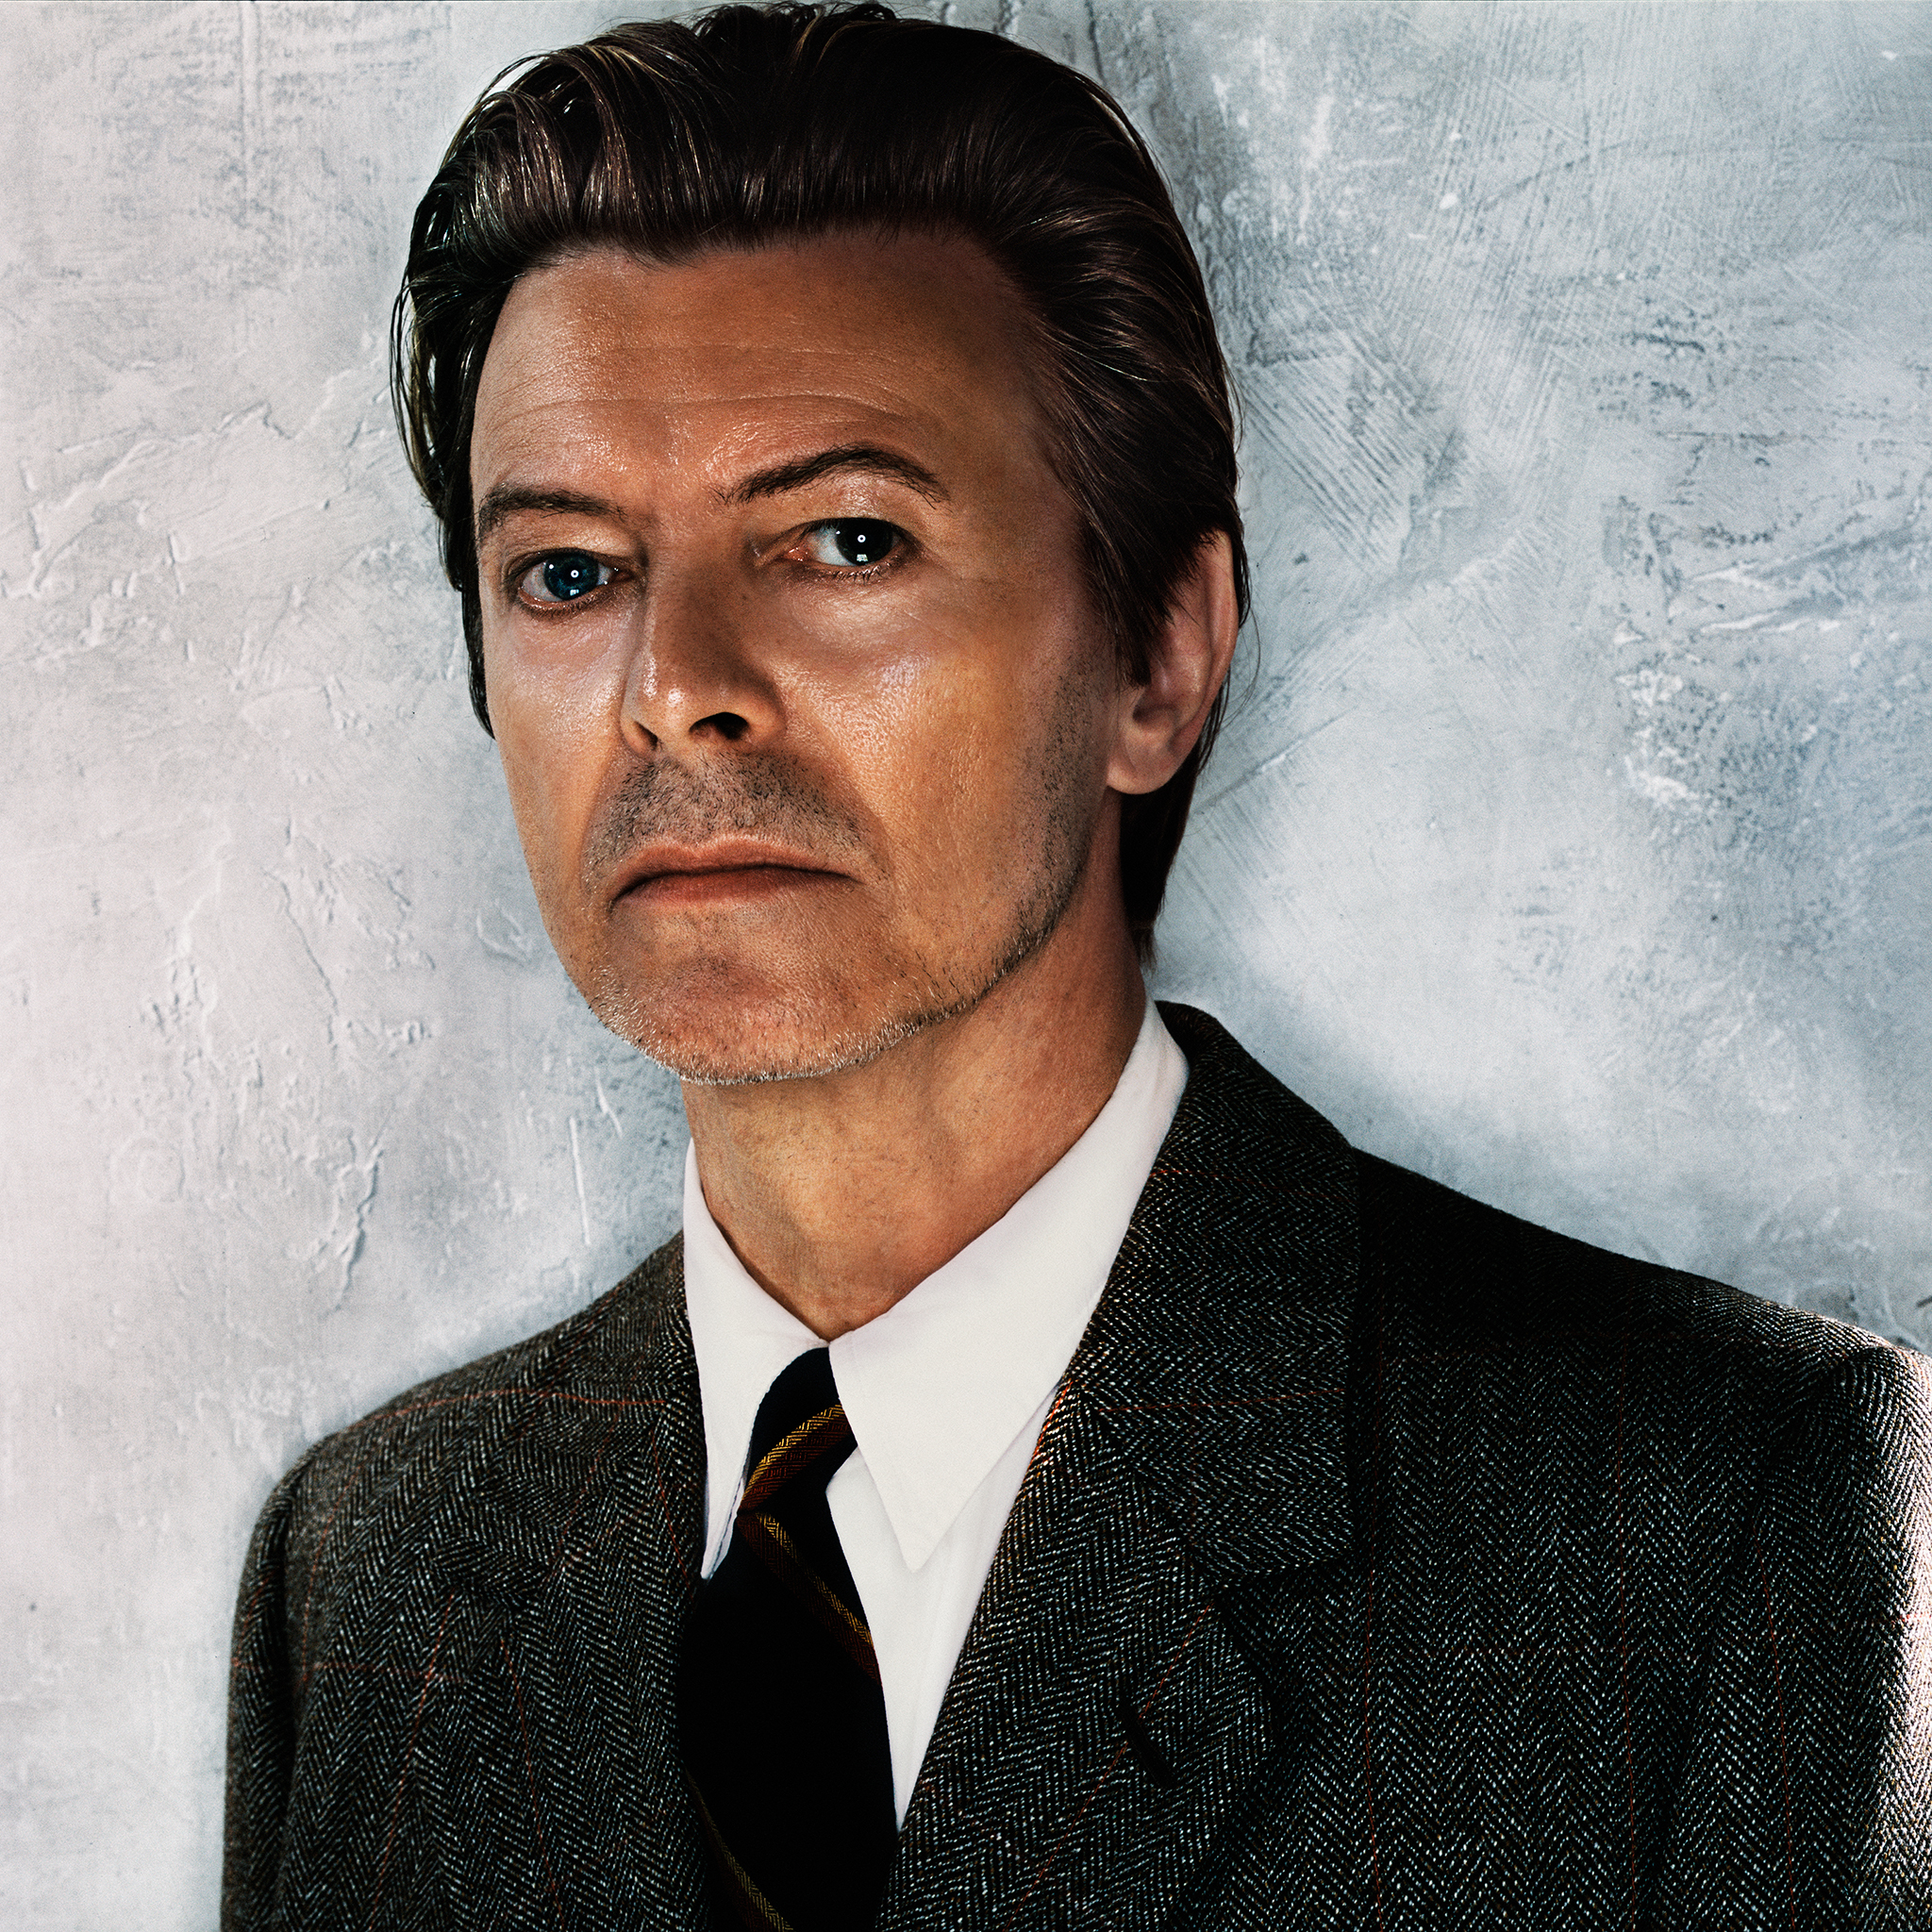 David Bowie by Markus Klinko